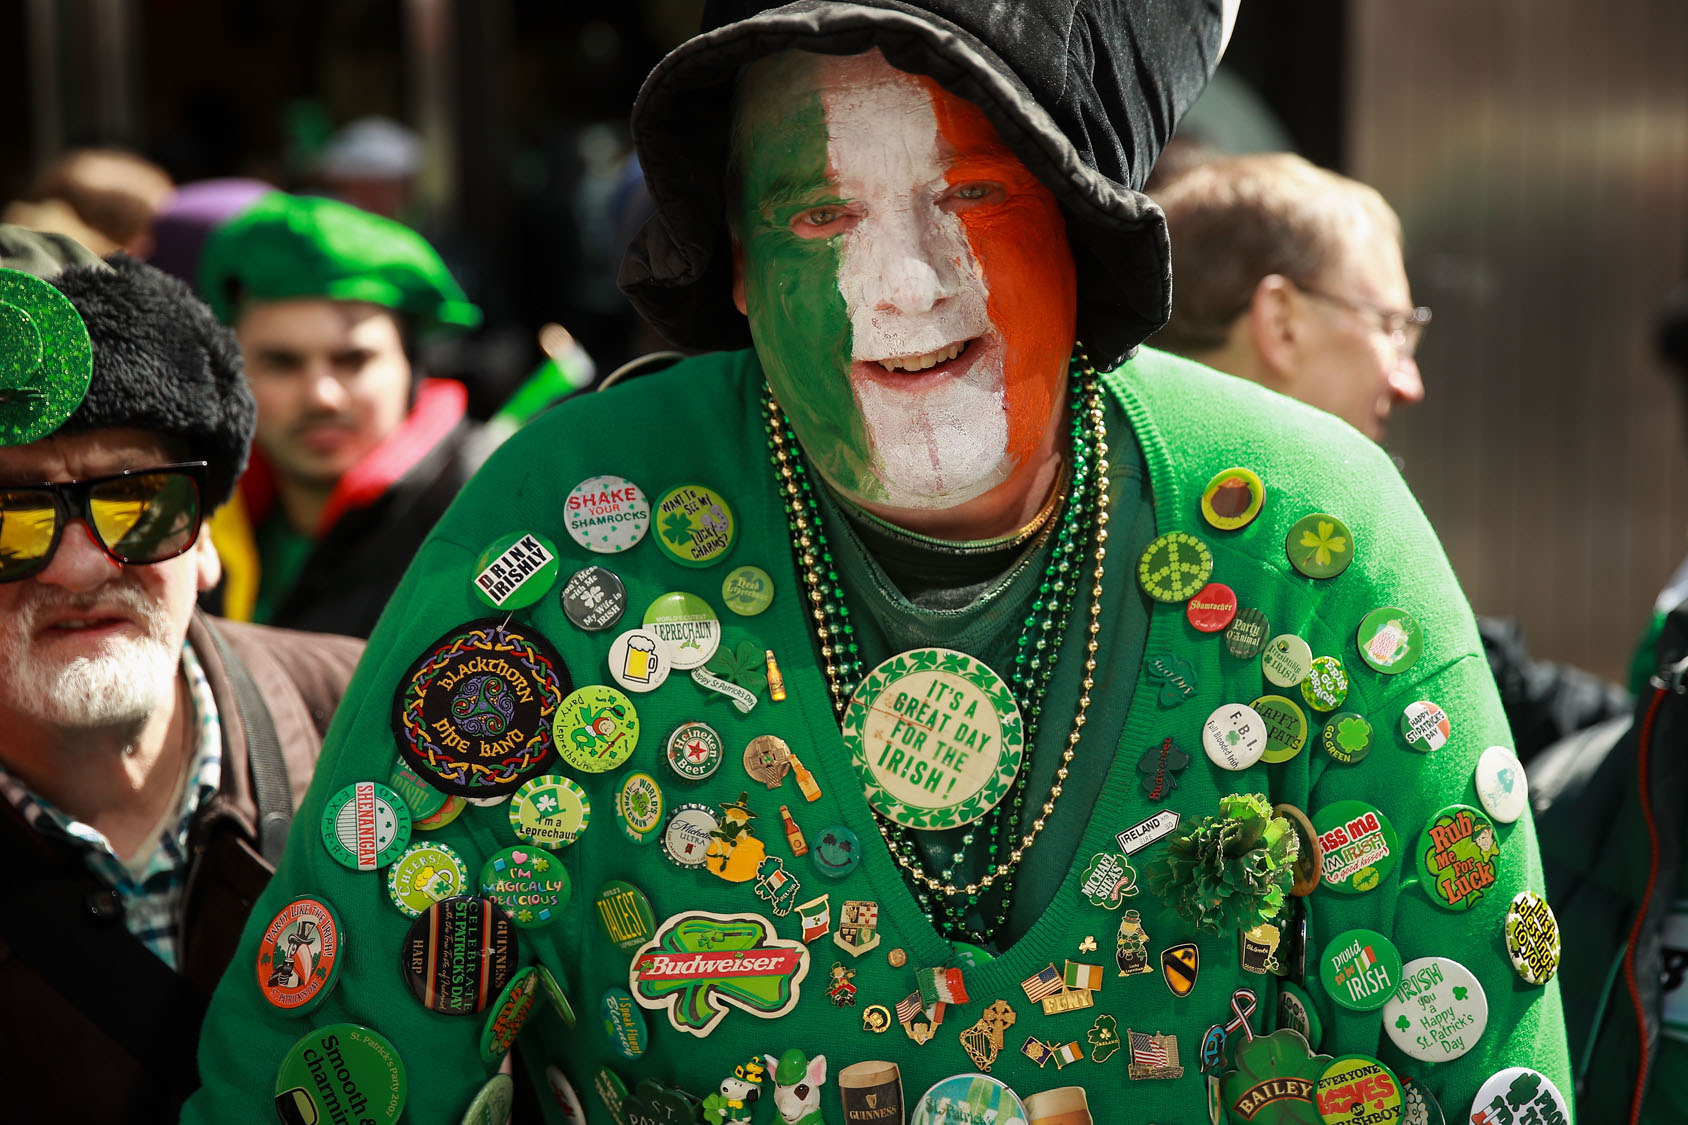 Annual St. Patrick's Day parade in New York